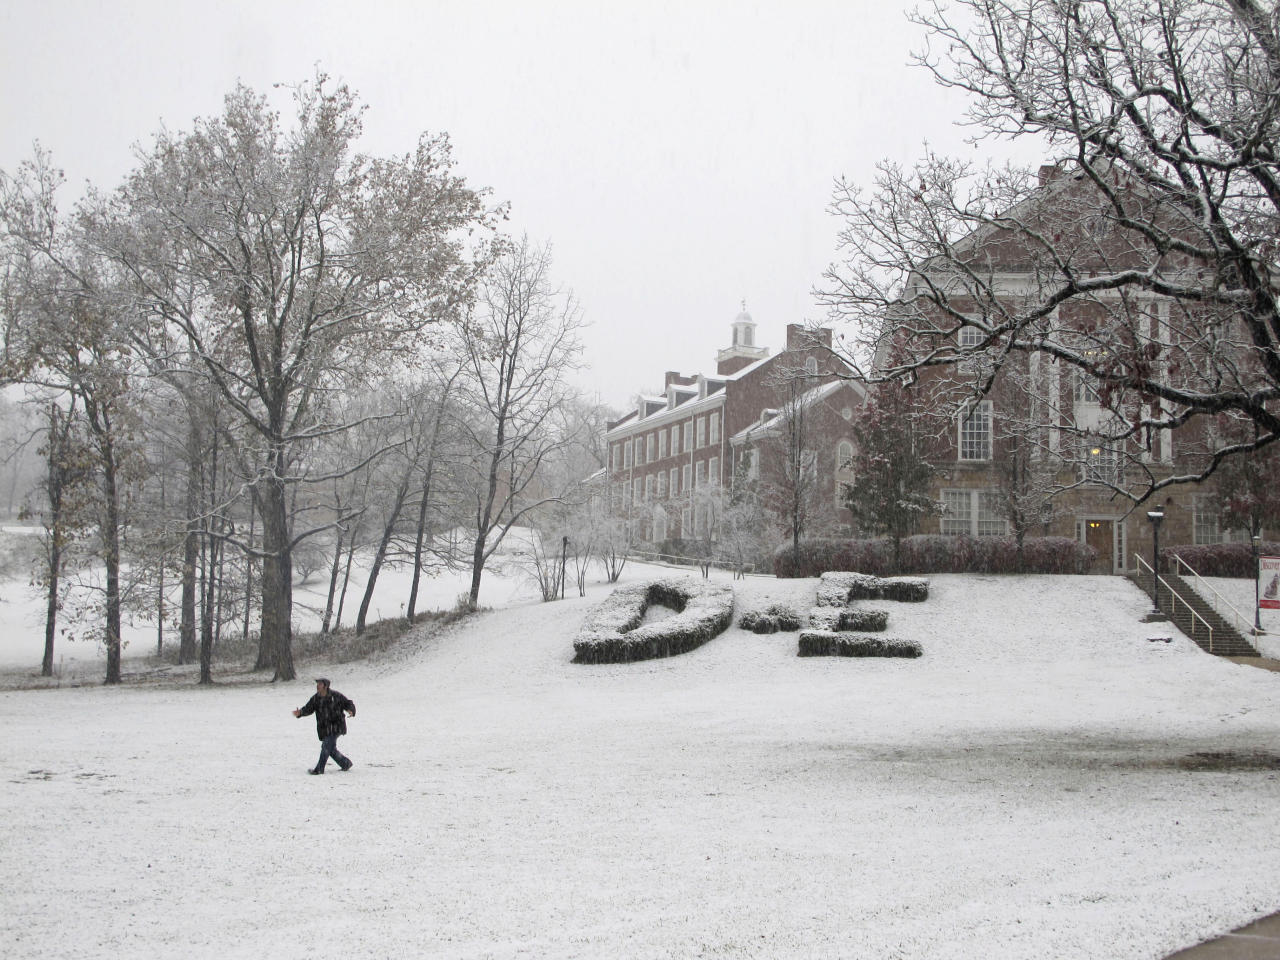 A student walks across the lawn at Davis & Elkins College as the snow started falling hard in Elkins, W. Va., on Monday, Oct. 29, 2012. (AP Photo/Vicki Smith)